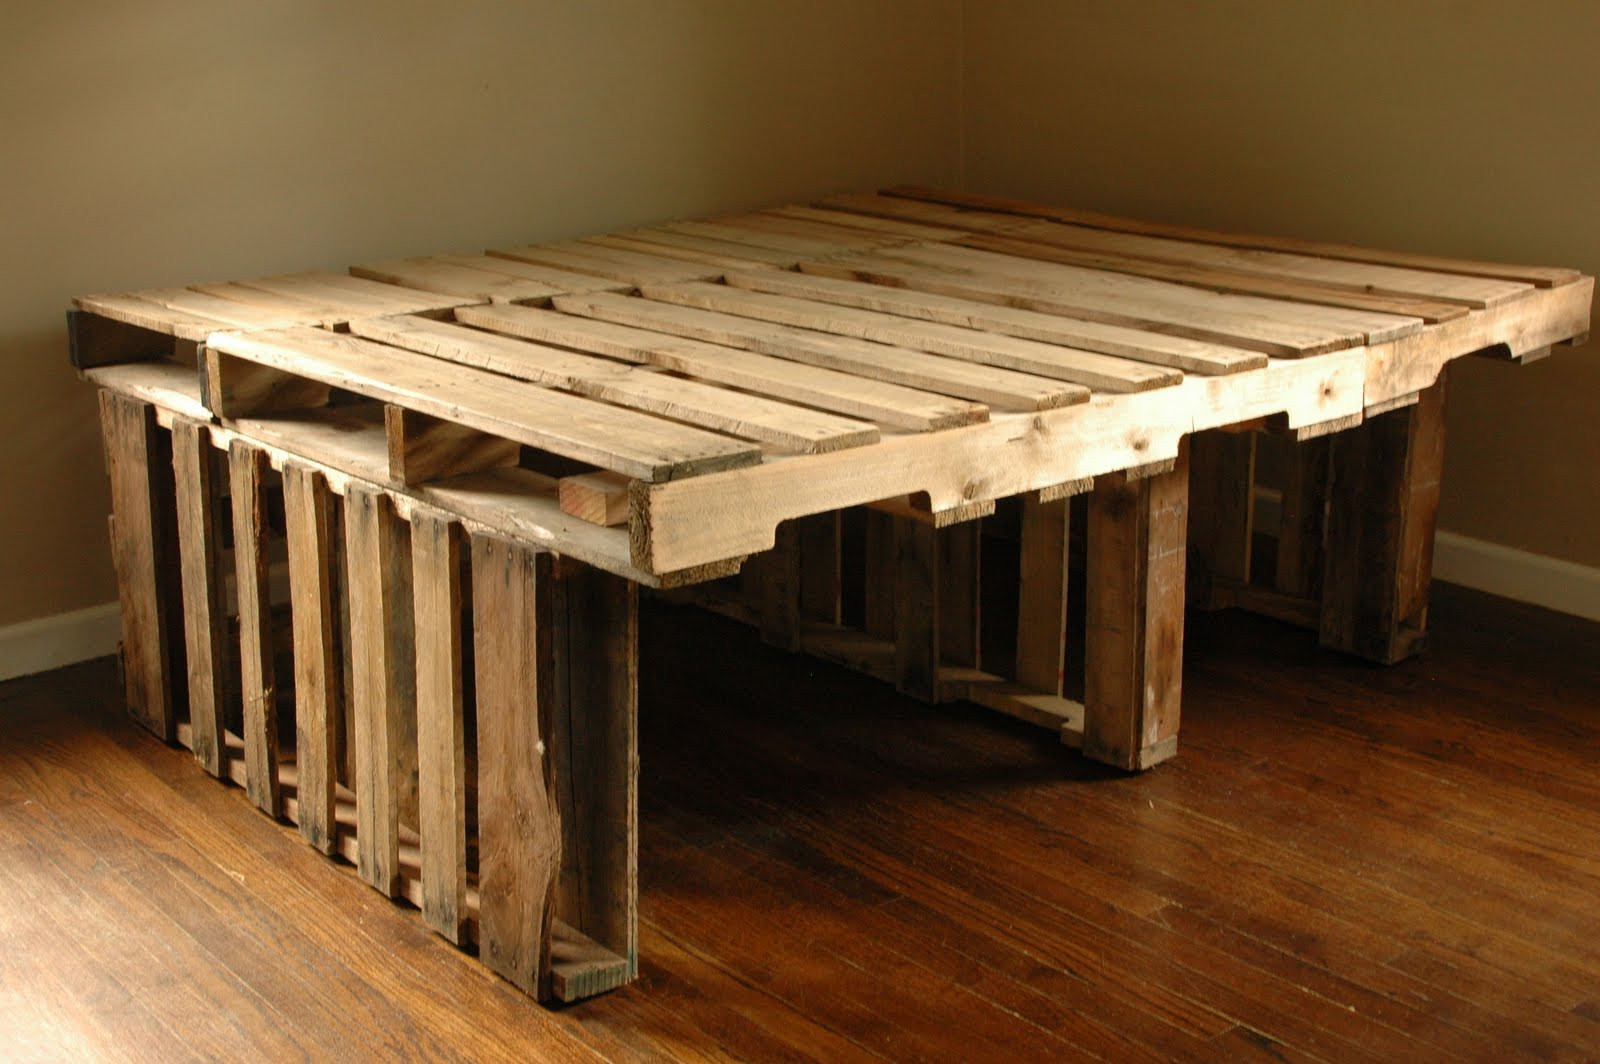 Picture of: Pallet Bed with Storage Plan